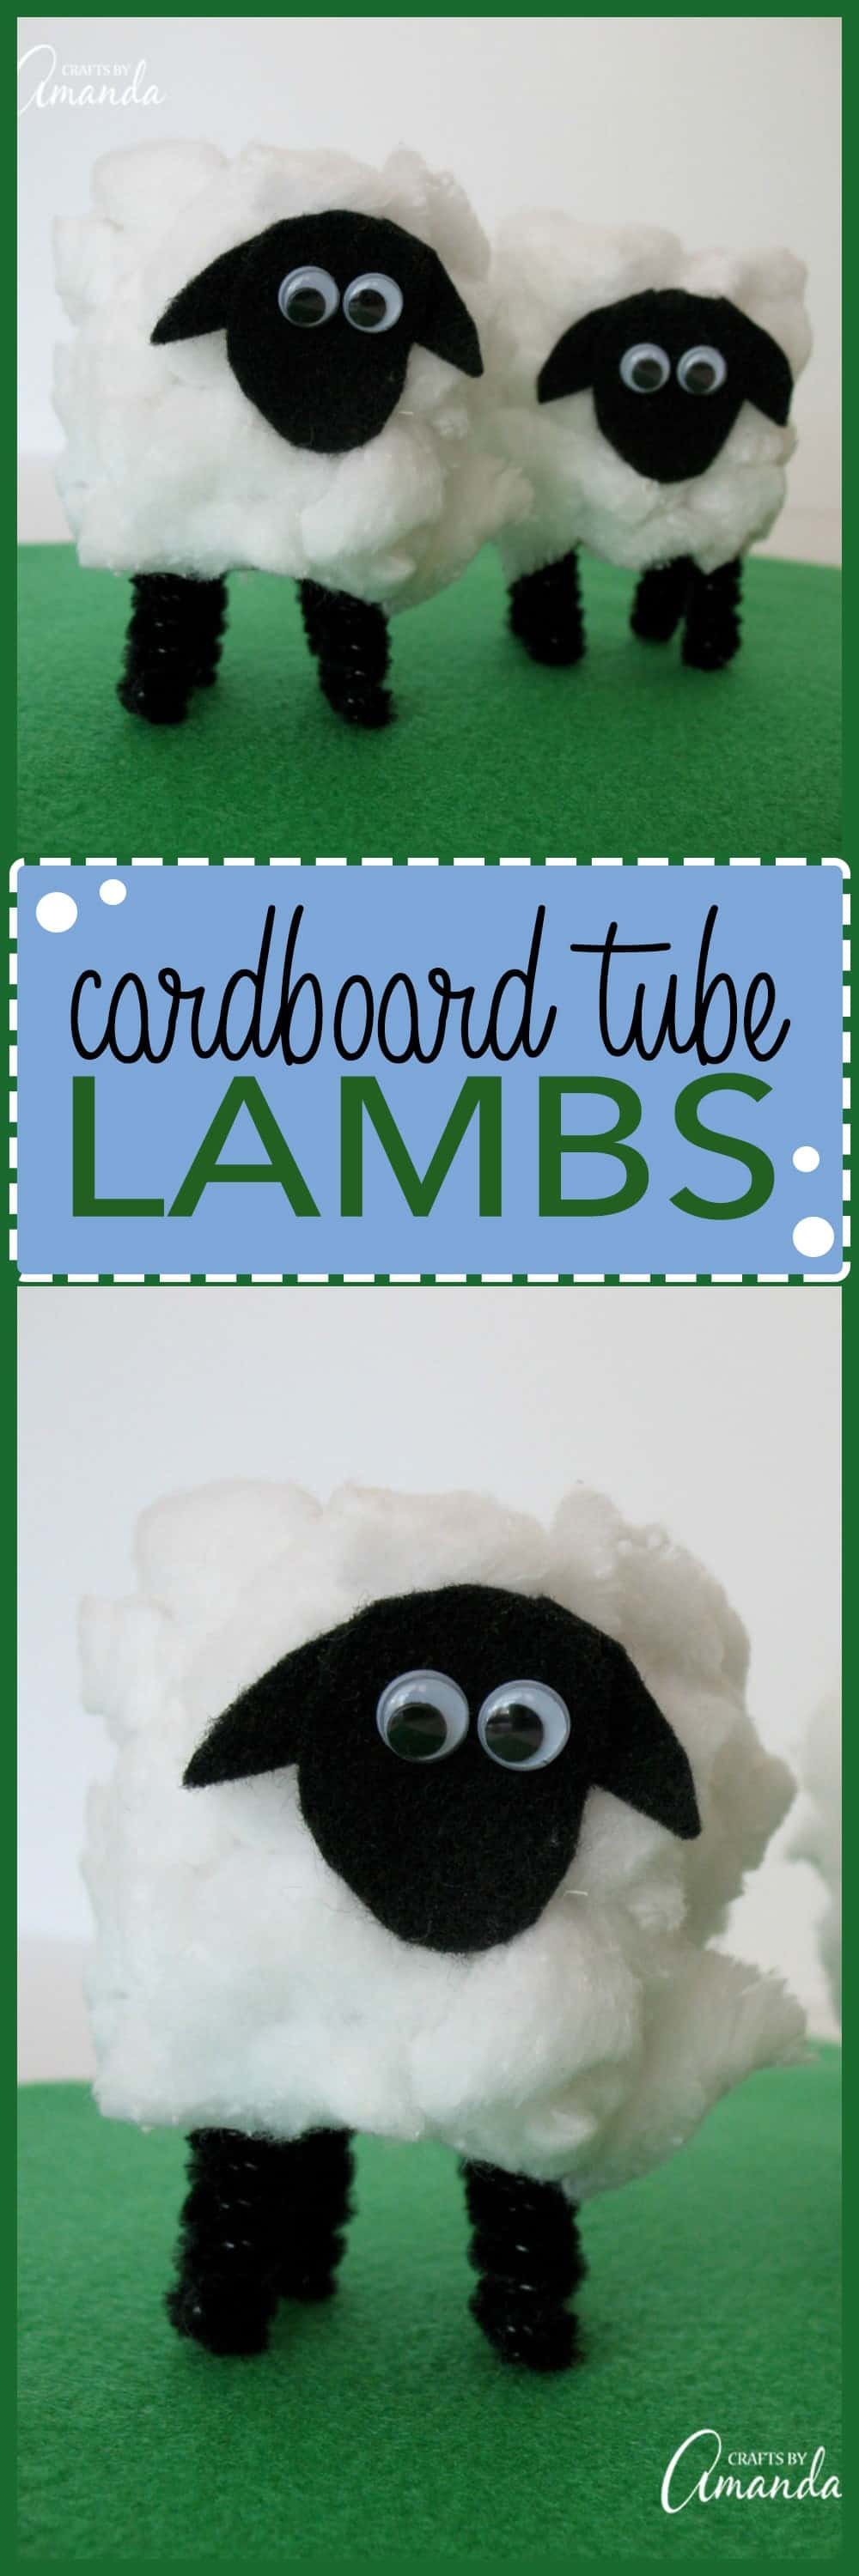 These super cute cardboard tube lambs are simple and fun! These fuzzy and adorable creations are the perfect Easter kids craft, and it's one they will love!